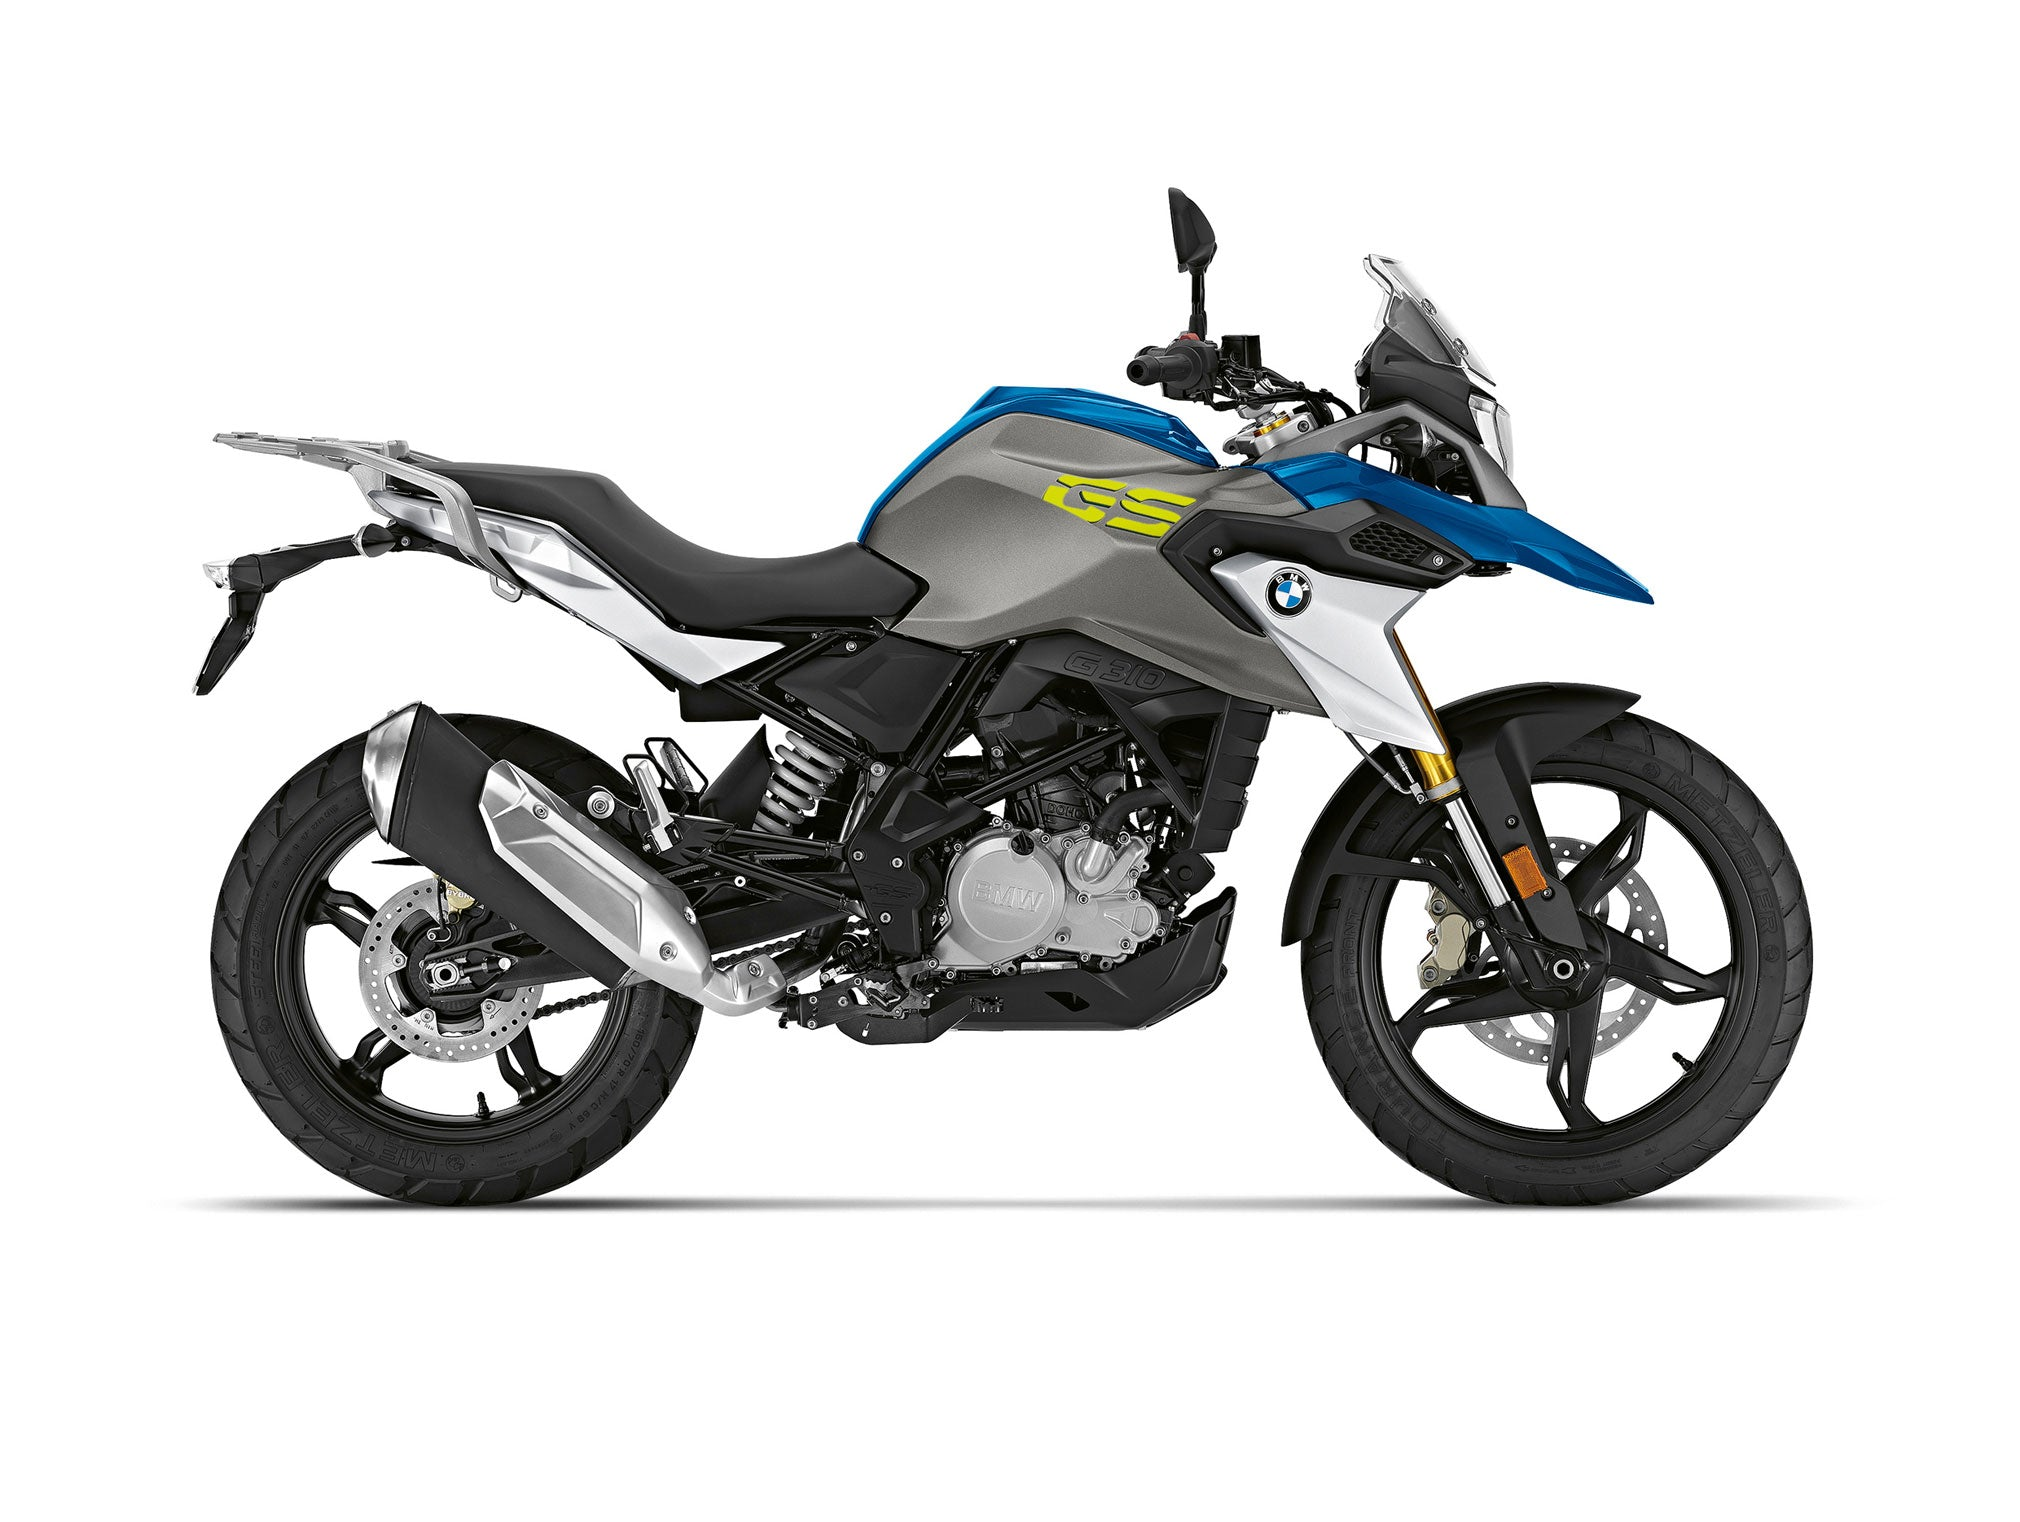 BMW G 310 GS - price starting at $5,795